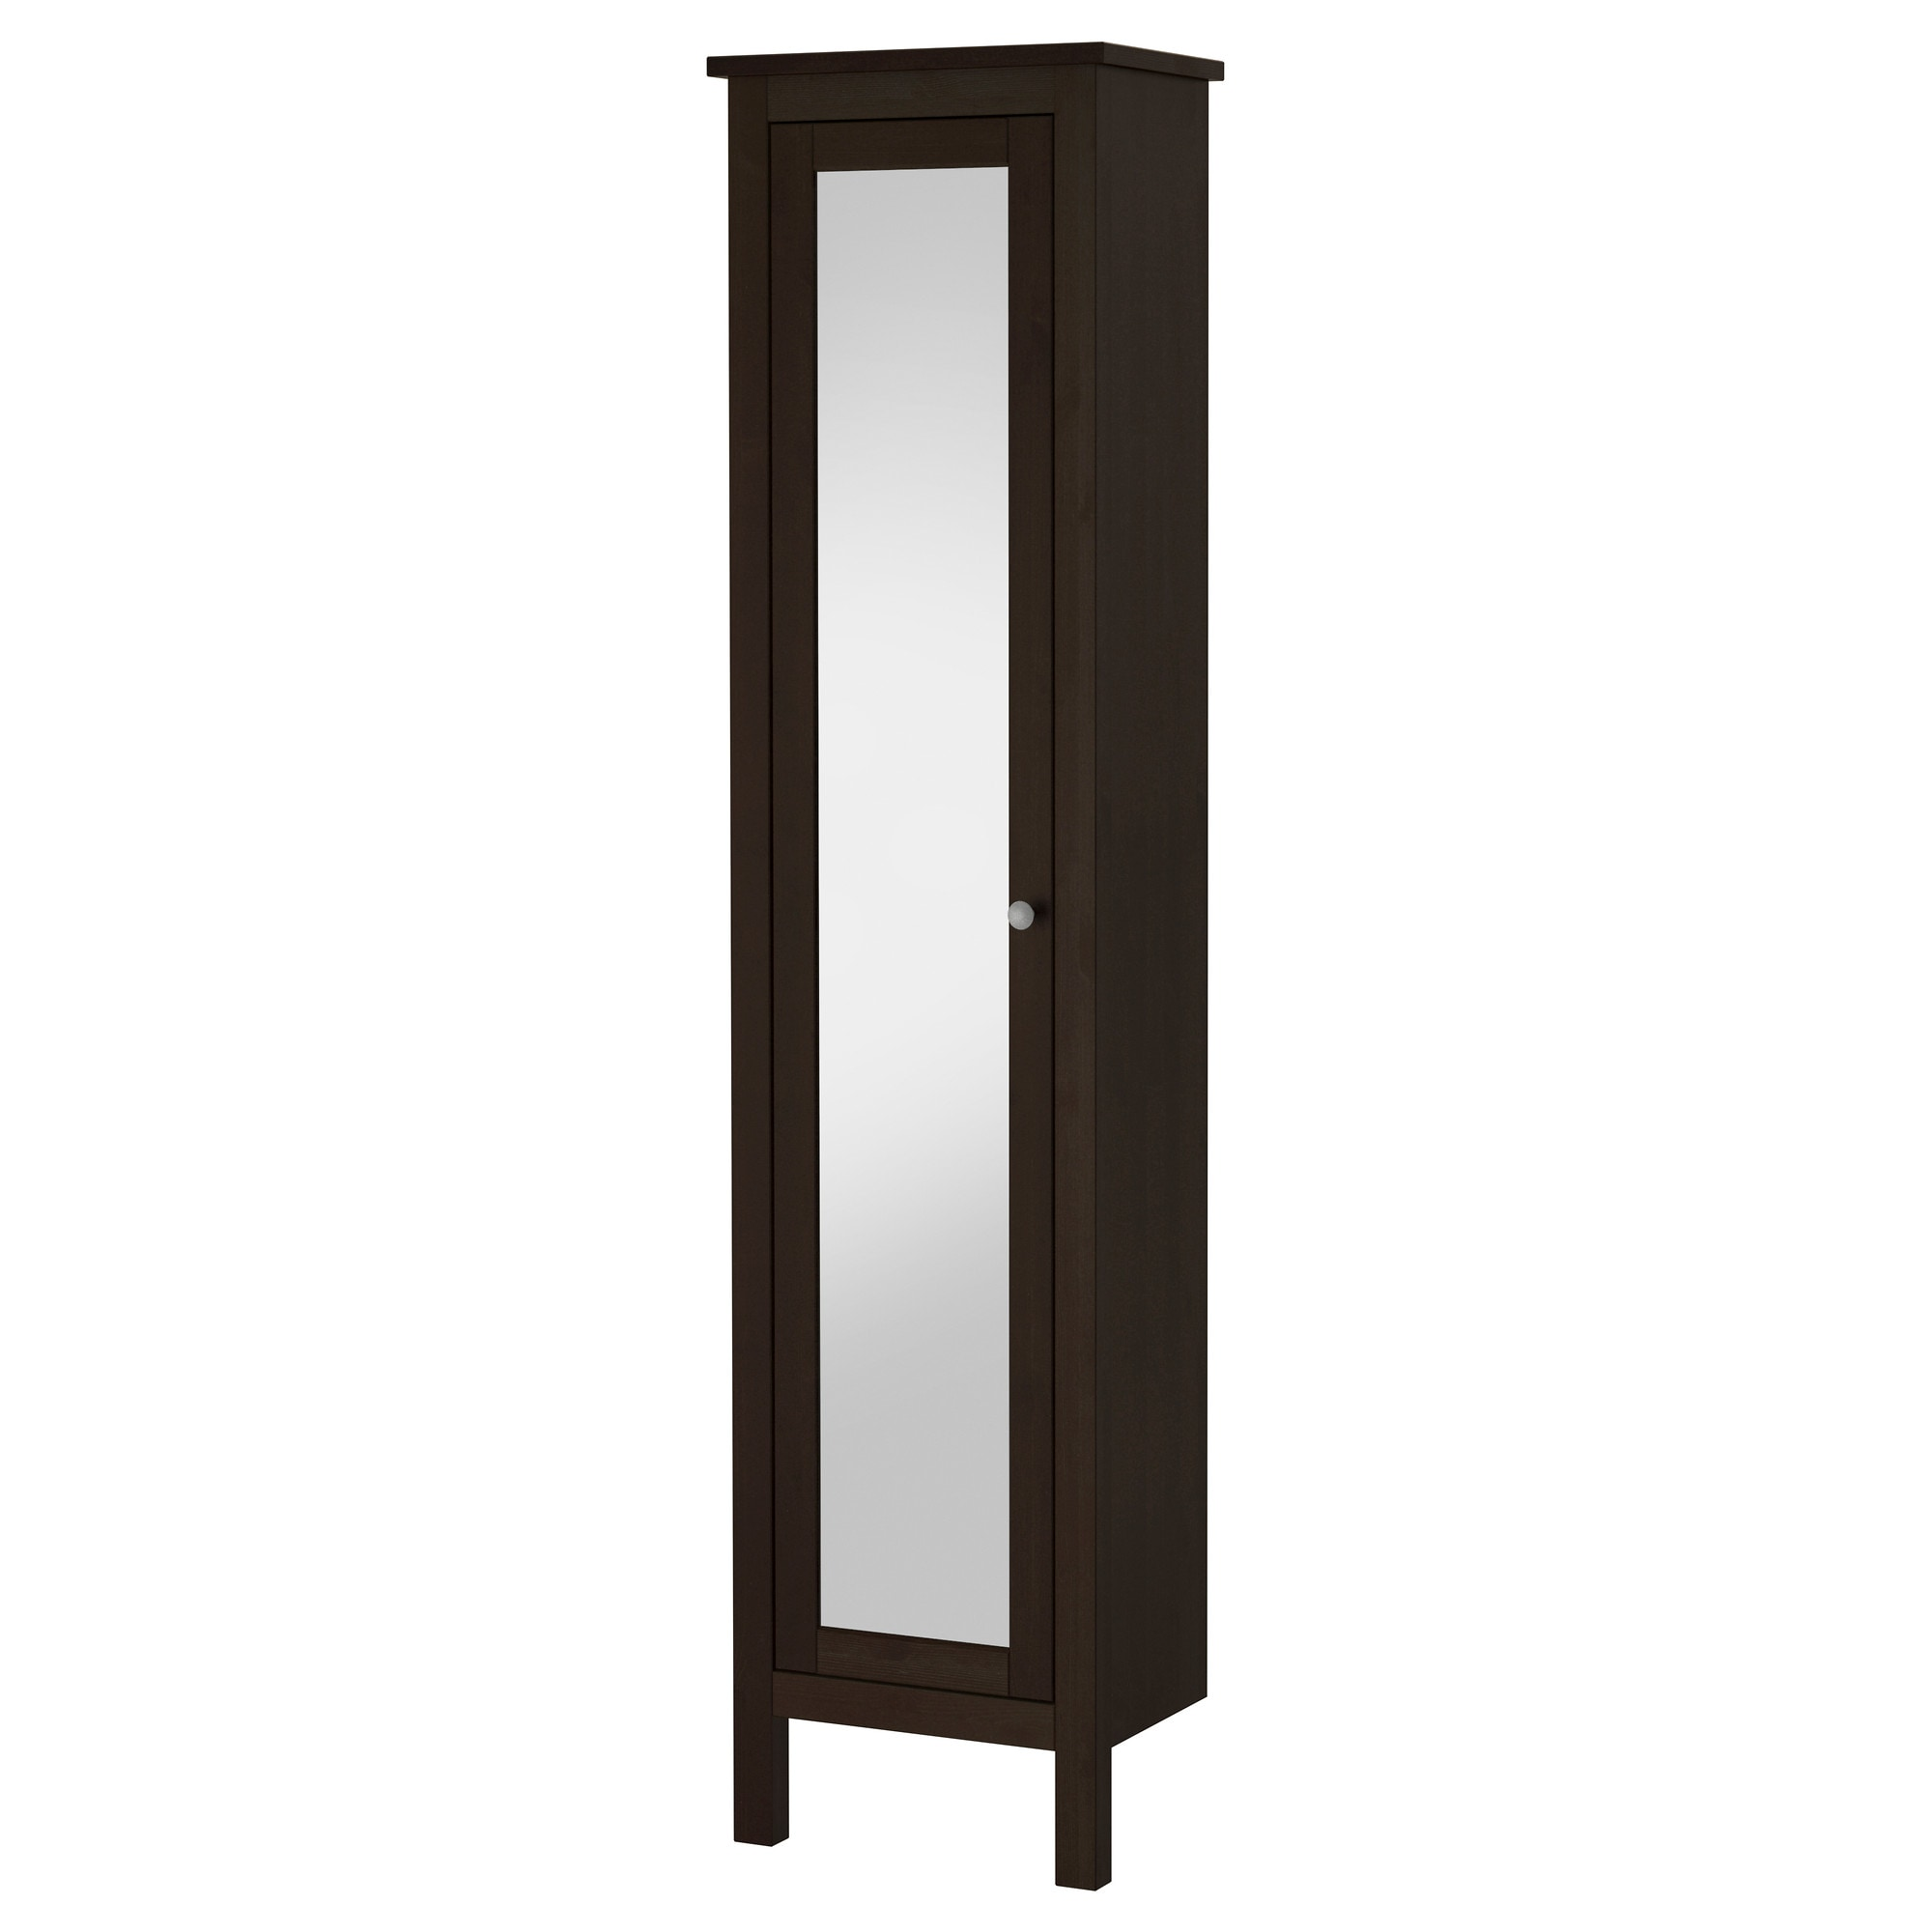 Bathroom mirror cabinets ikea - Hemnes High Cabinet With Mirror Door Black Brown Stain Width 19 1